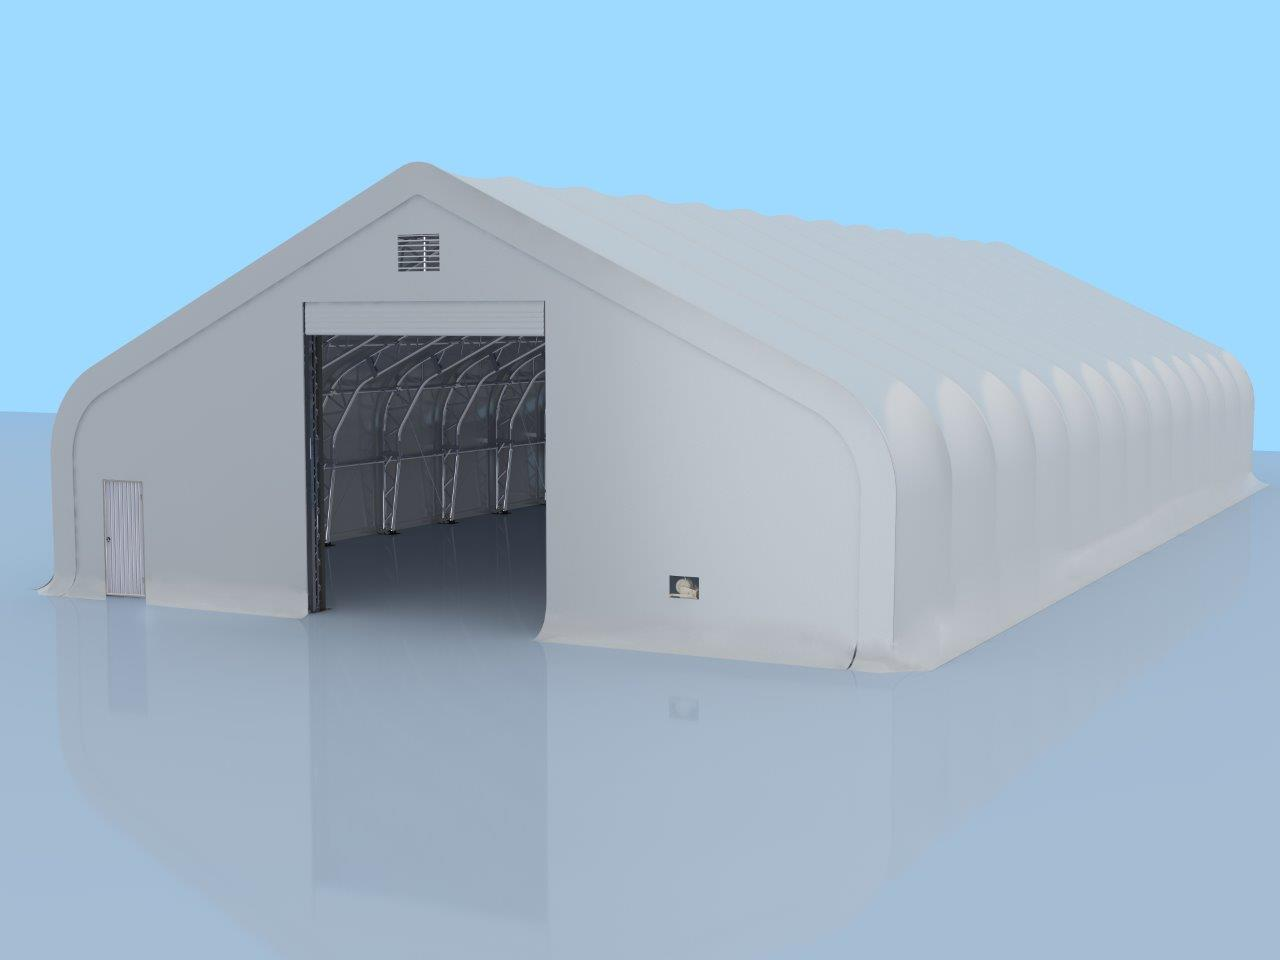 Pro Series 50' x 100' Dual Truss Storage Shelter with Heavy Duty 32oz PVC Fabric